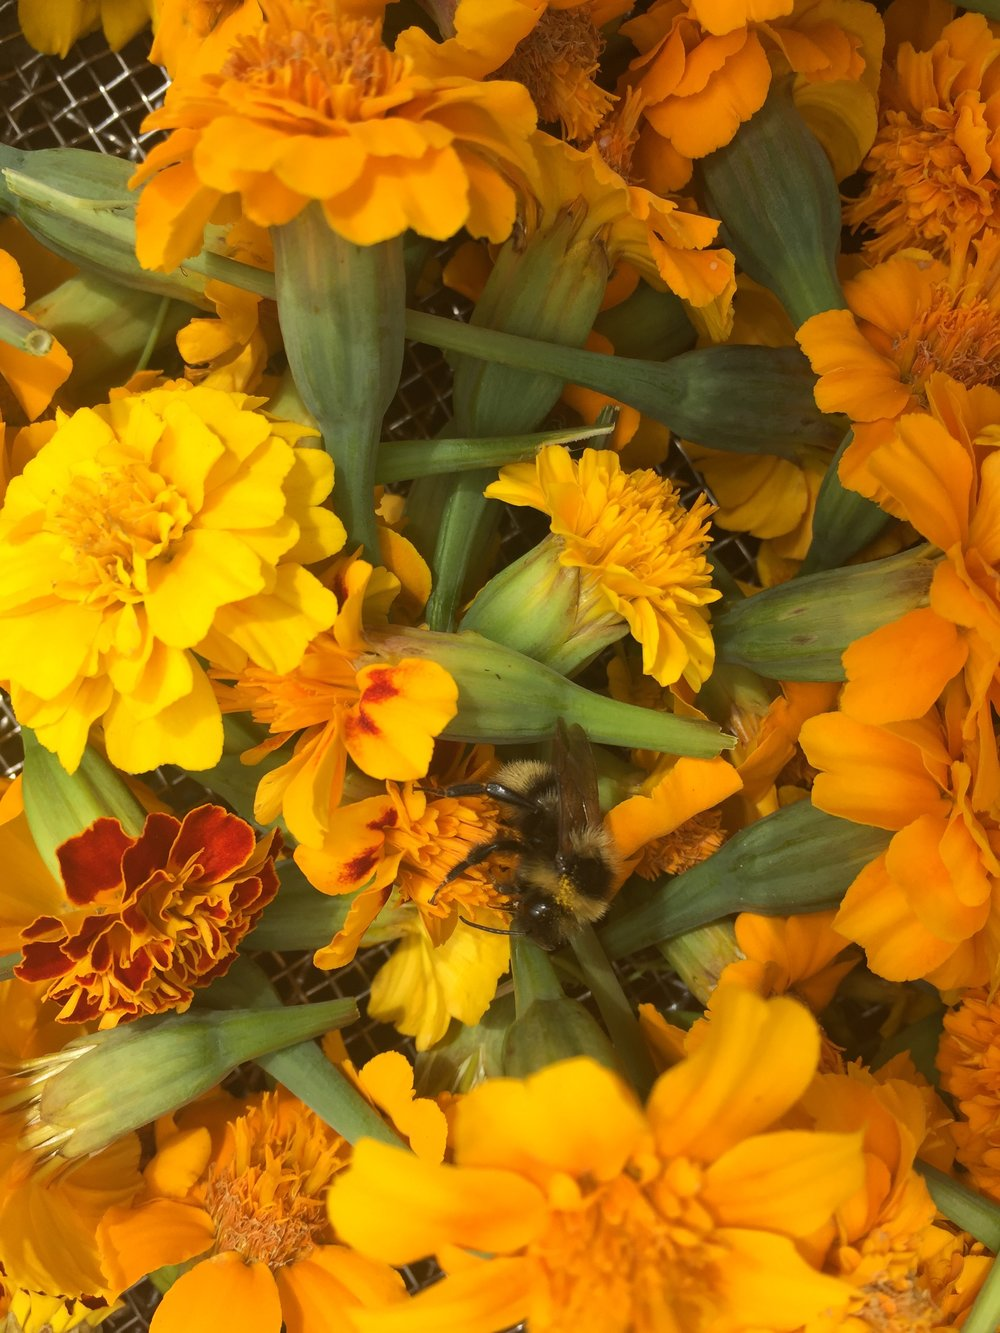 REF:97  'tagetes'  tagete, french marigold  flower petals can be scattered over salads, cakes. add to pancakes for that lemon taste.